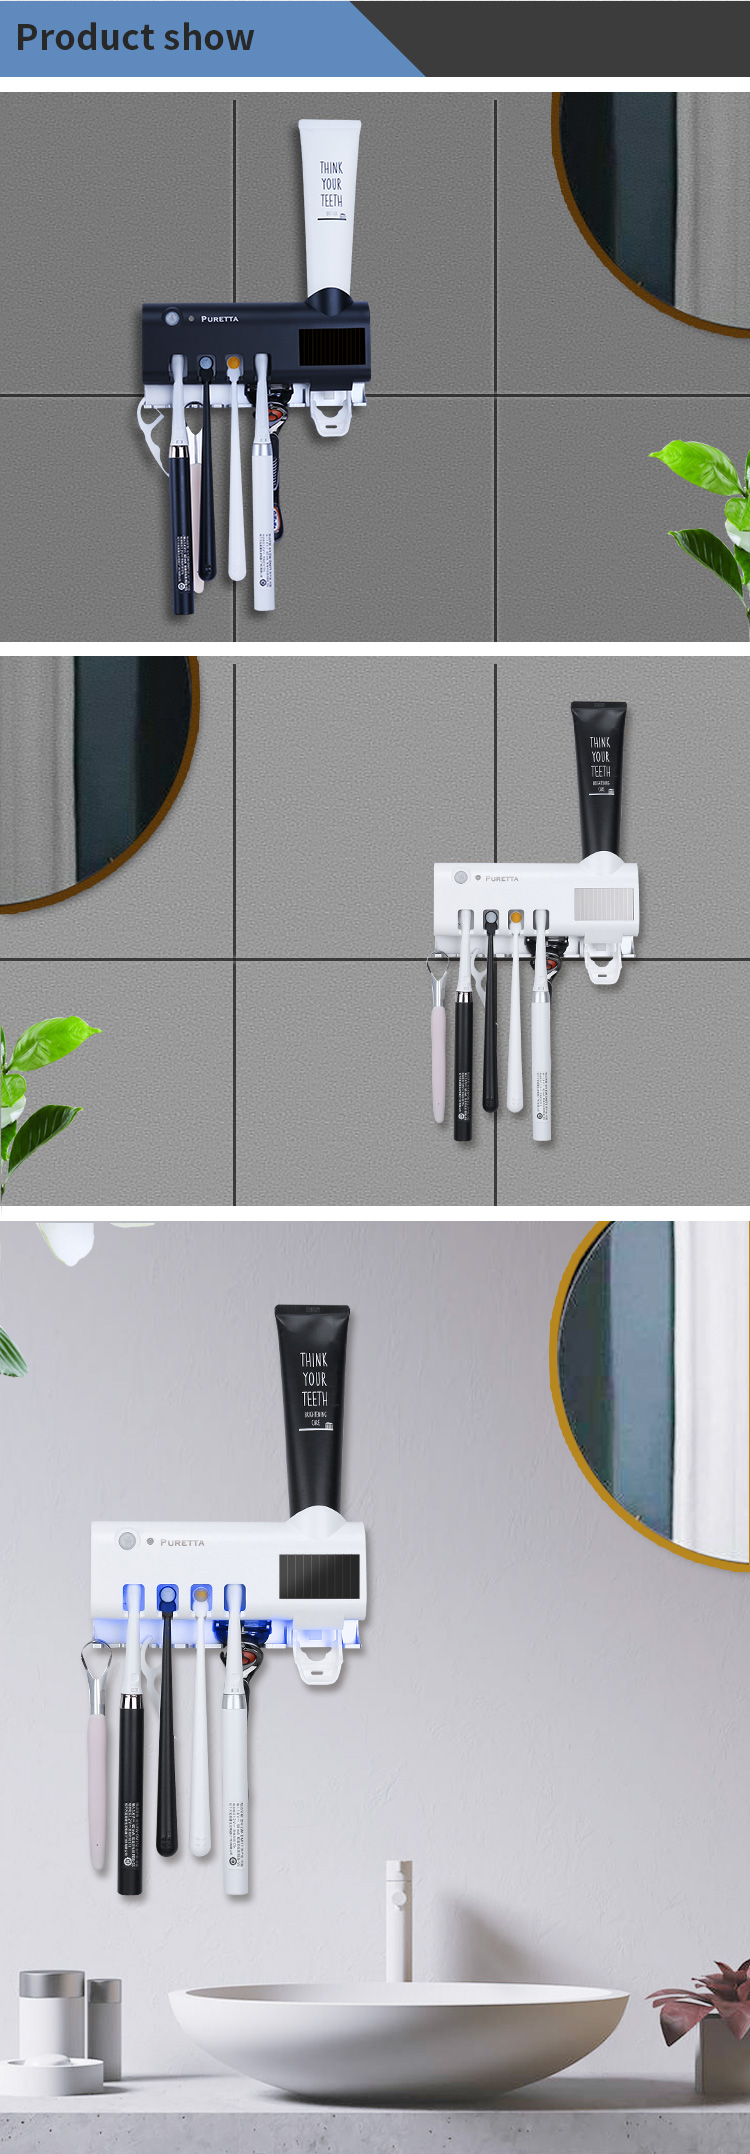 High Quality UV Light Electric Toothbrush Sterilizer Toothpaste Dispenser With Solar Panel Recharge